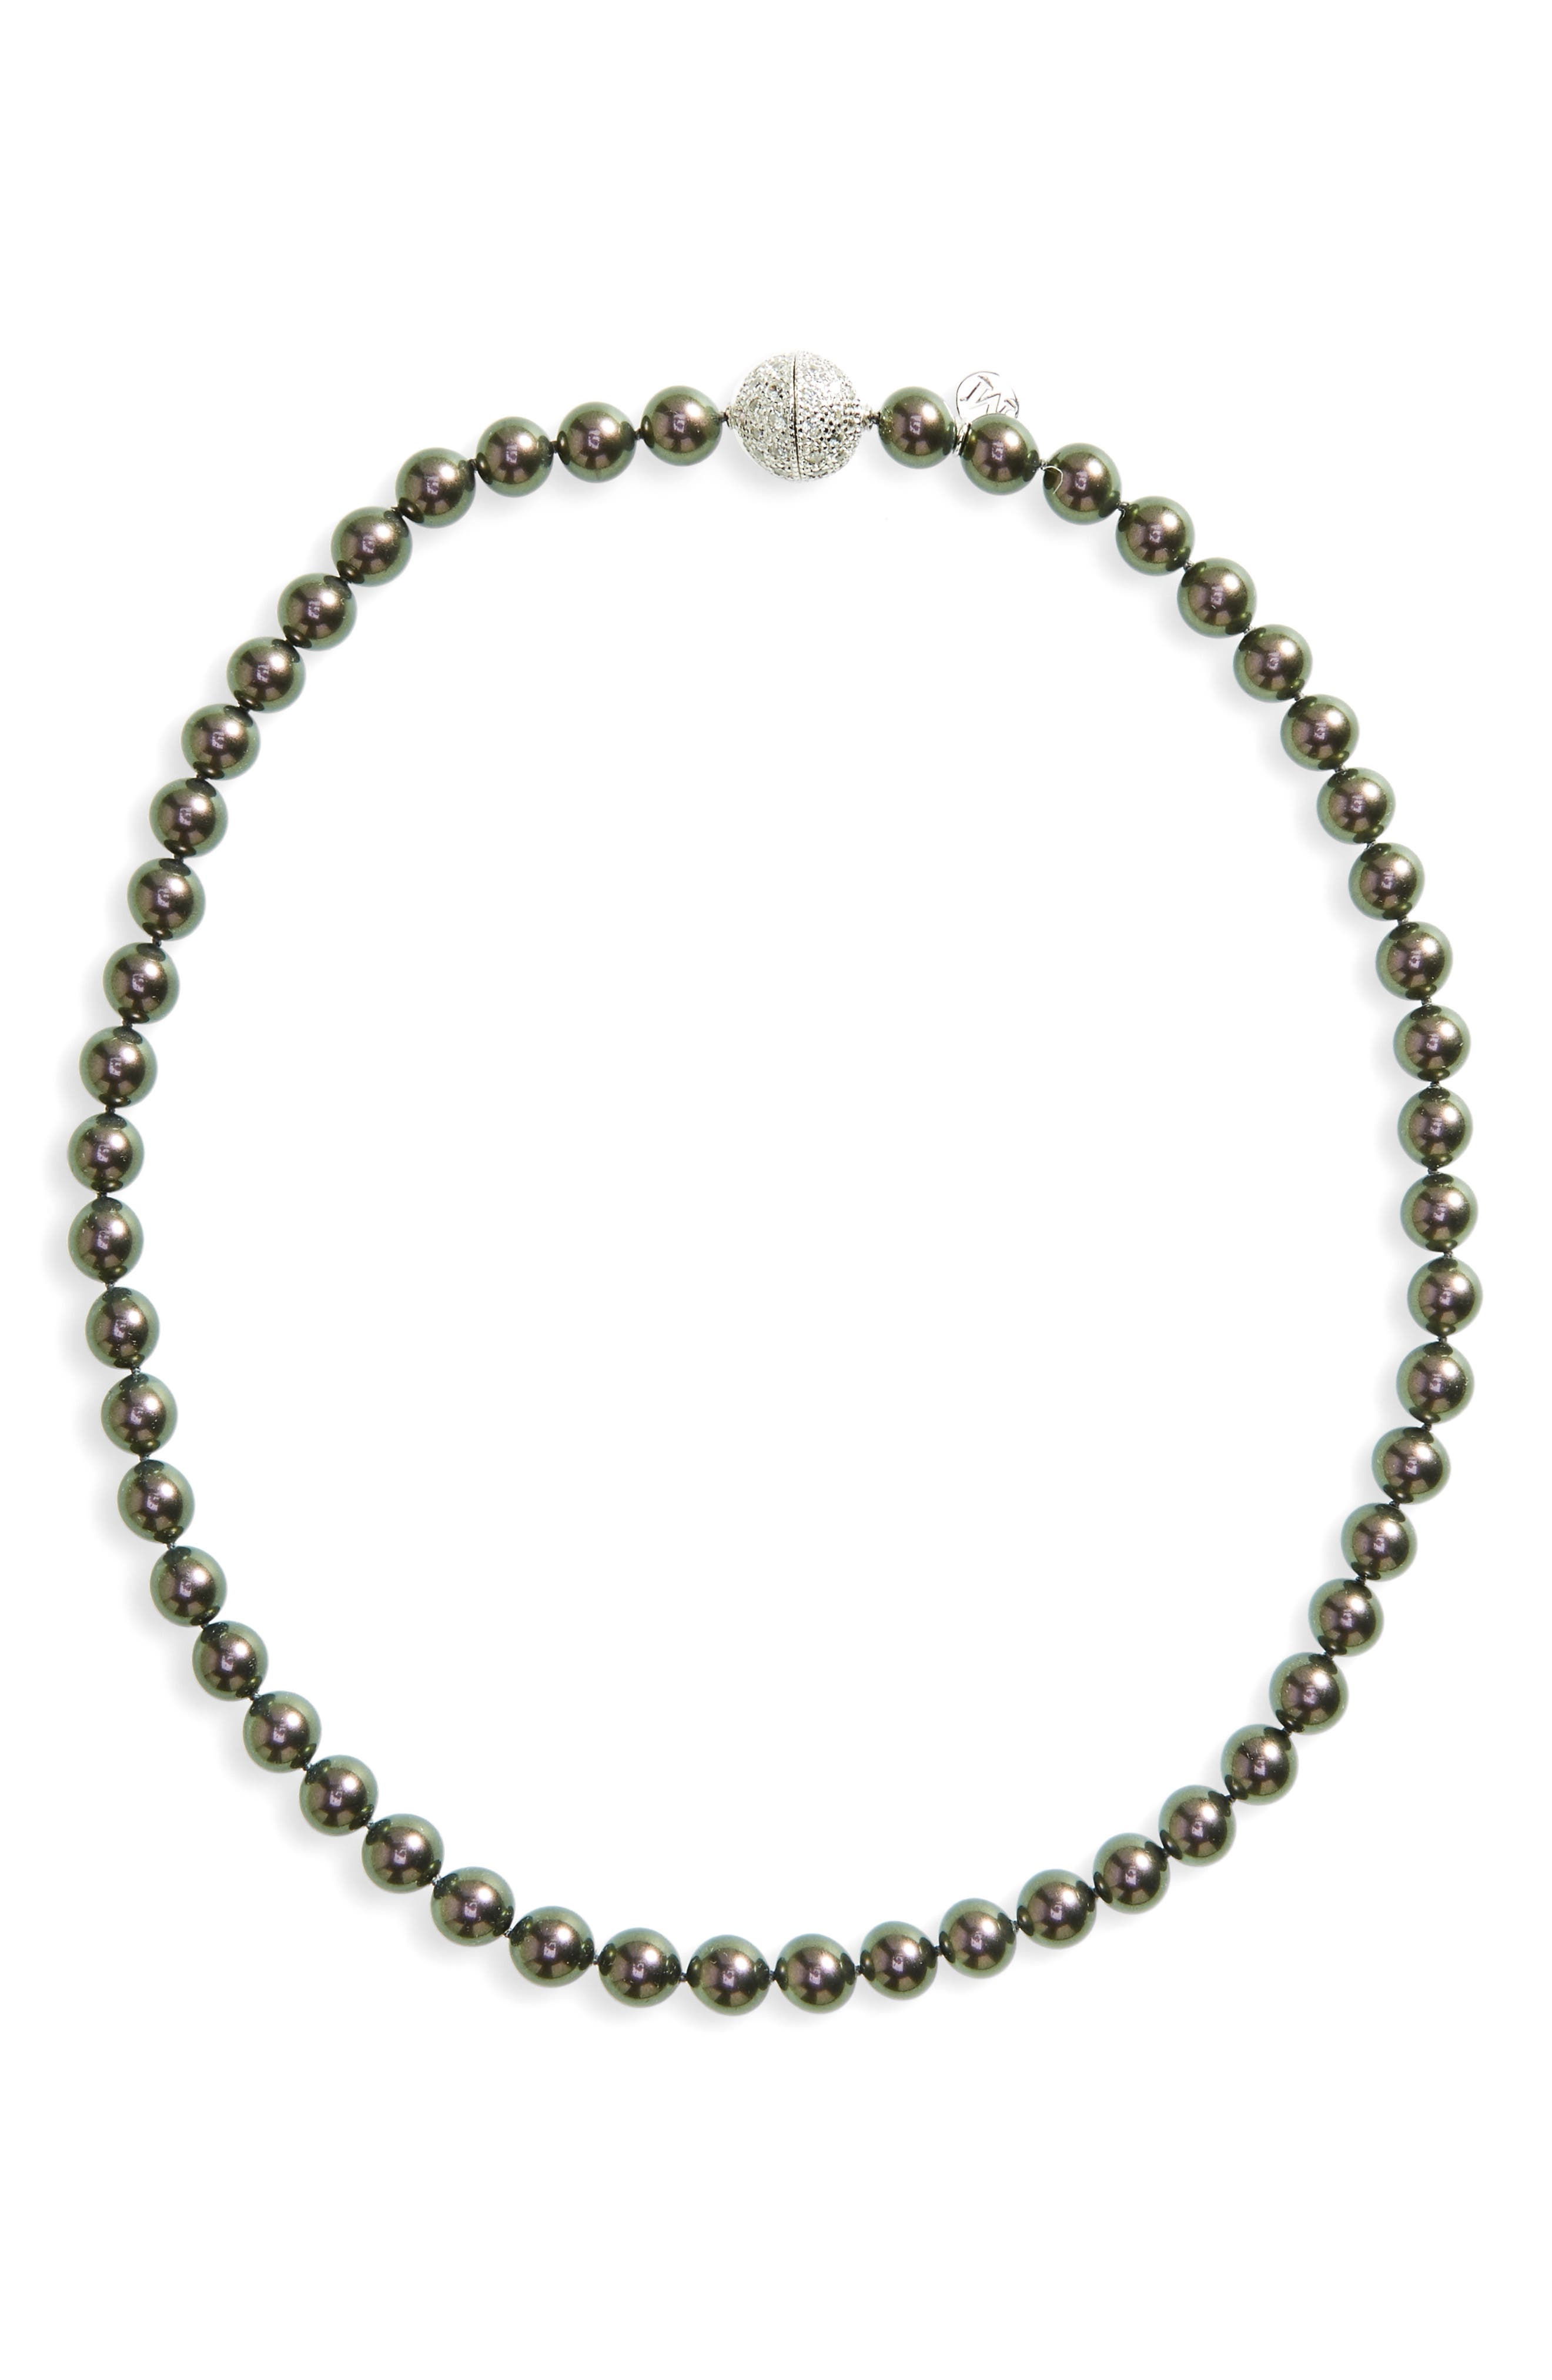 8mm Round Simulated Pearl Strand Necklace,                             Main thumbnail 1, color,                             Grey